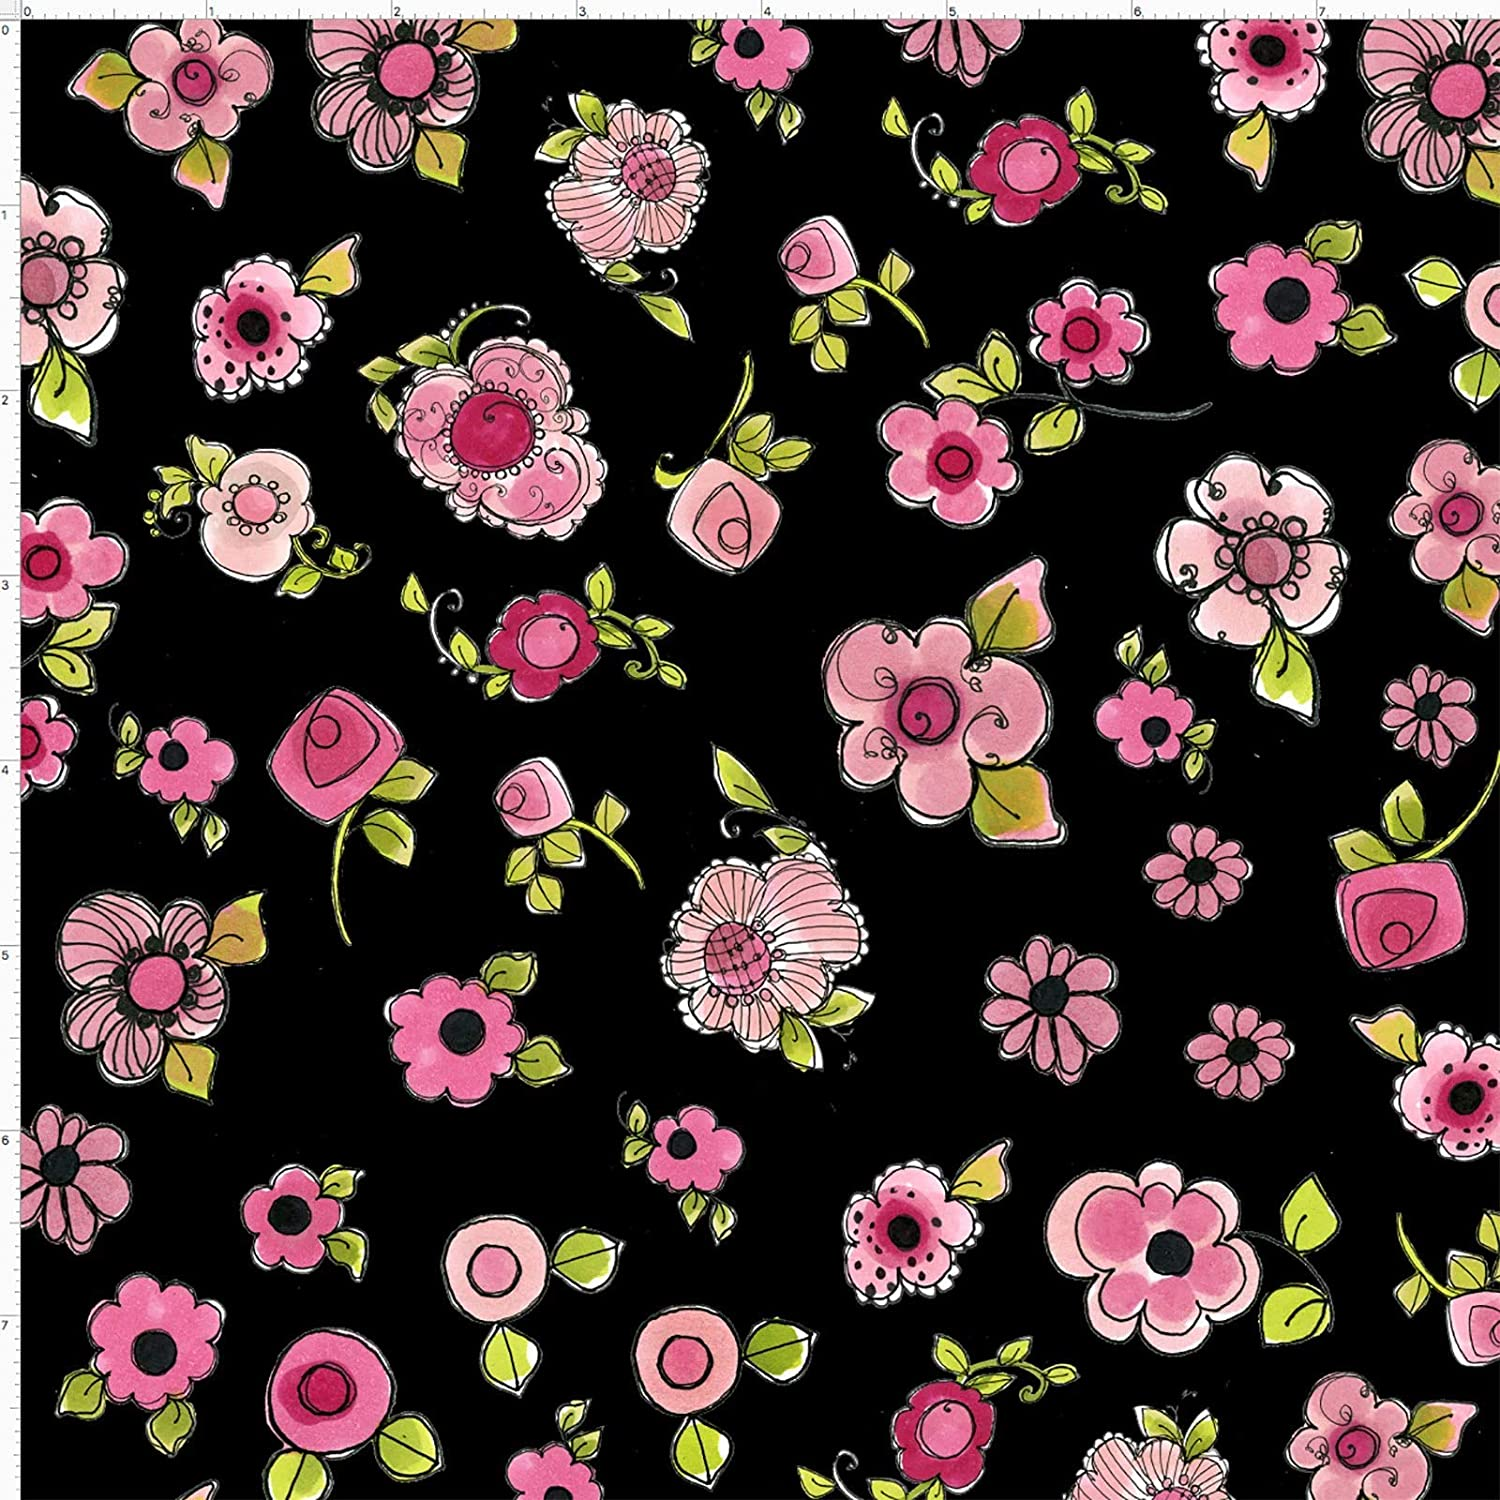 Loralie Designs Black Love Your Look Salon Parlor Posies Fabric by The Yard, Washable